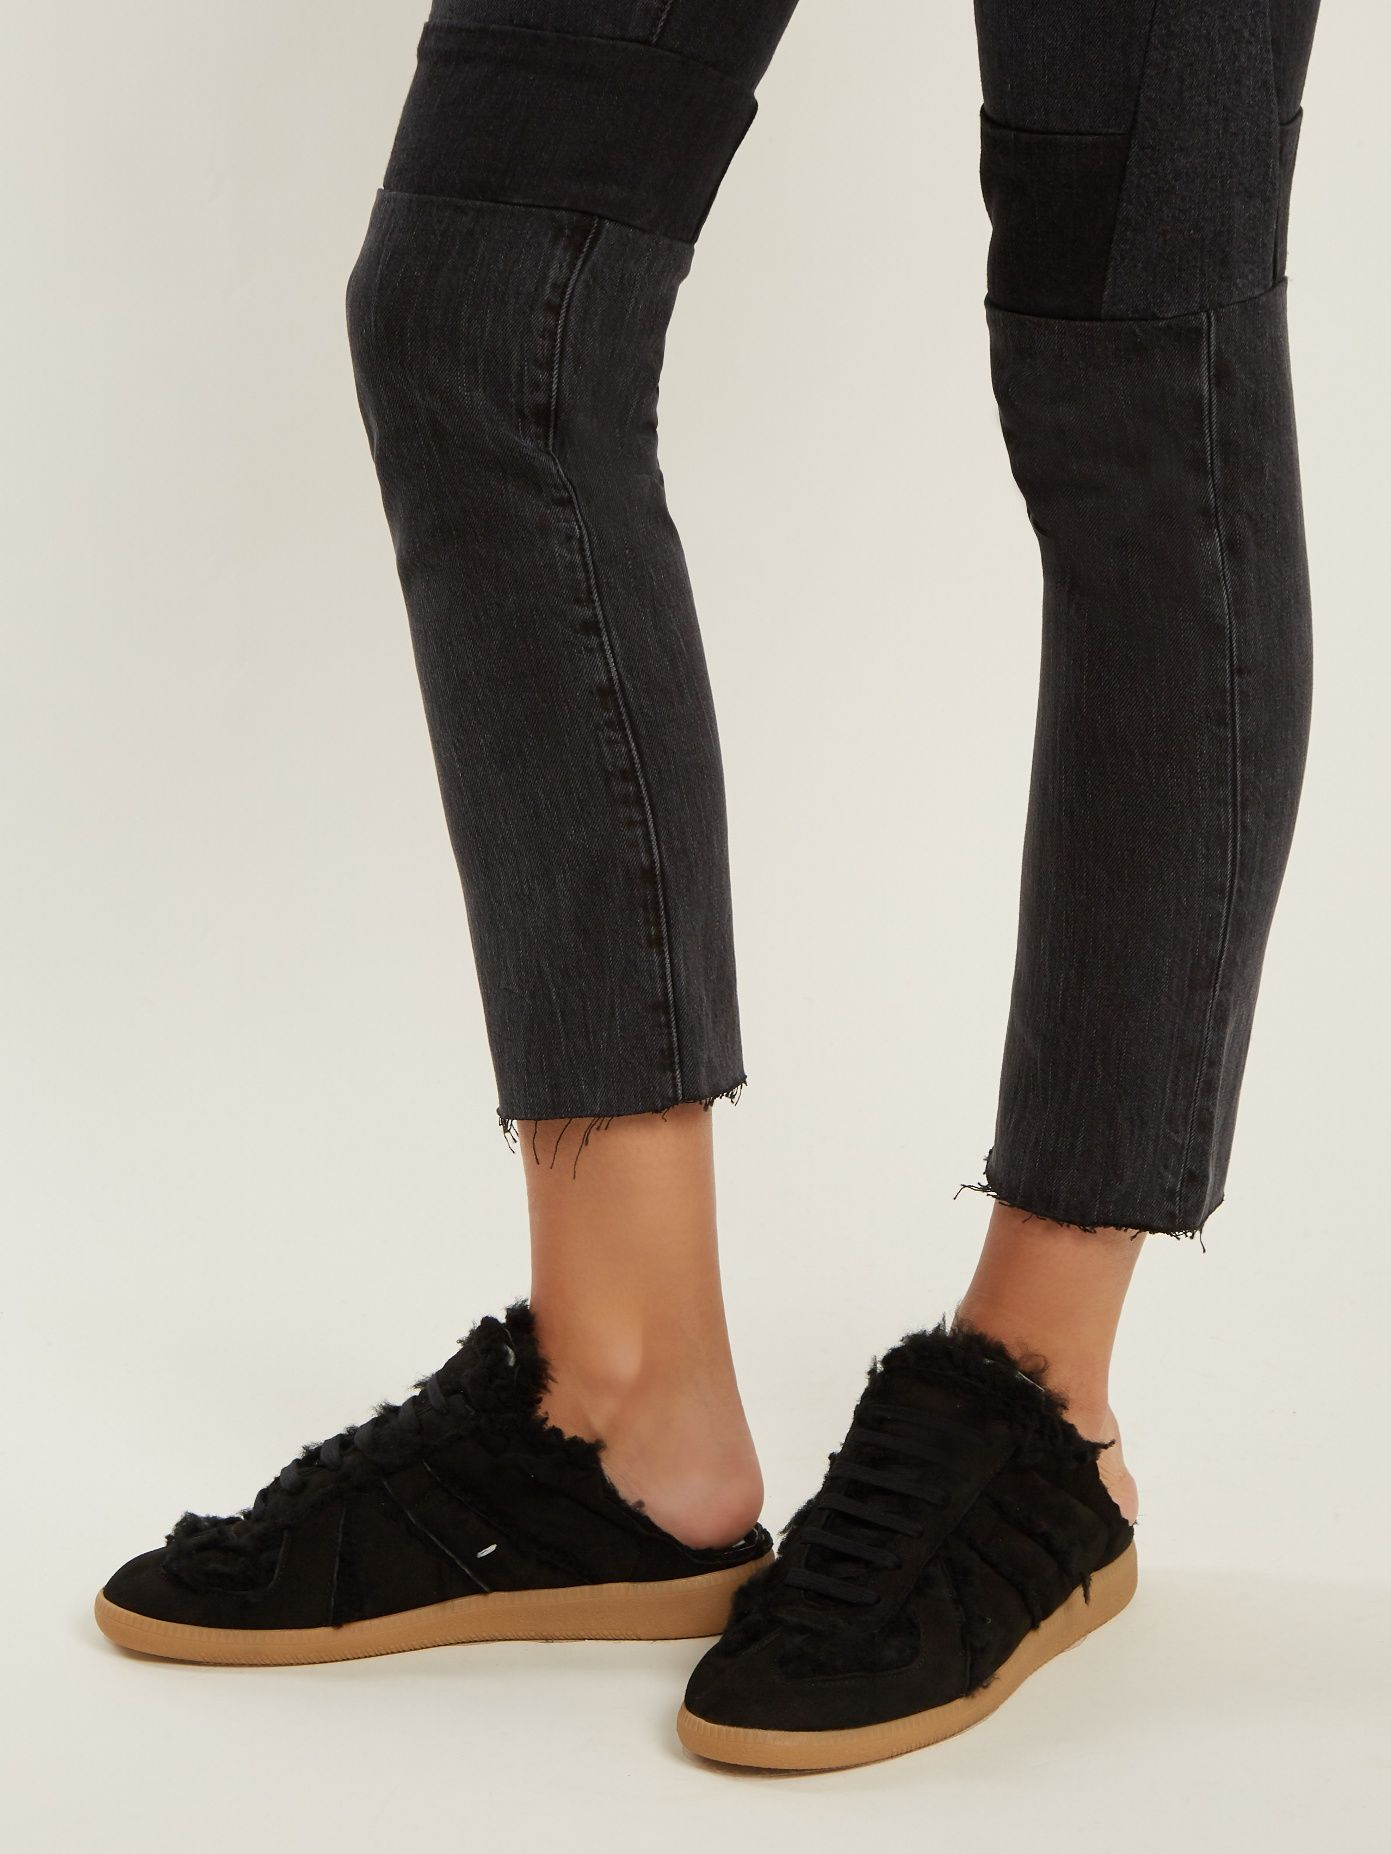 Click here to buy Maison Margiela Replica low-top shearling-lined backless  trainers at MATCHESFASHION.COM 10964049f